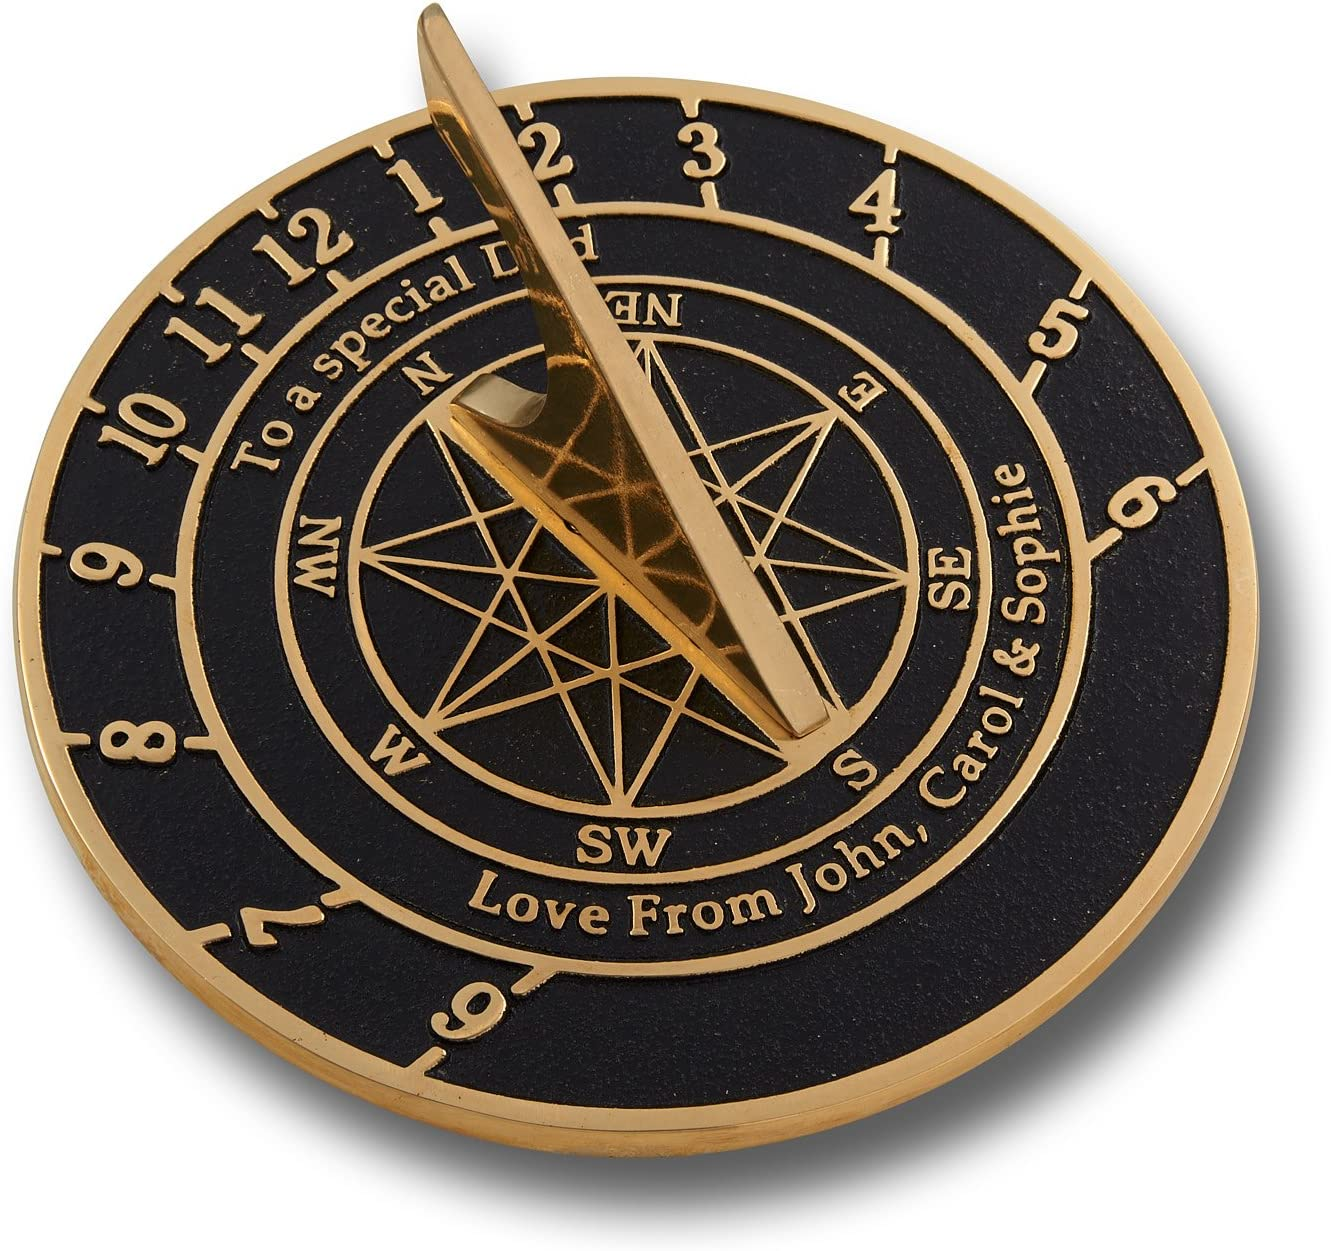 The Genuine Metal Foundry Personalized Large Sundial Gift. Price reduction Brass English